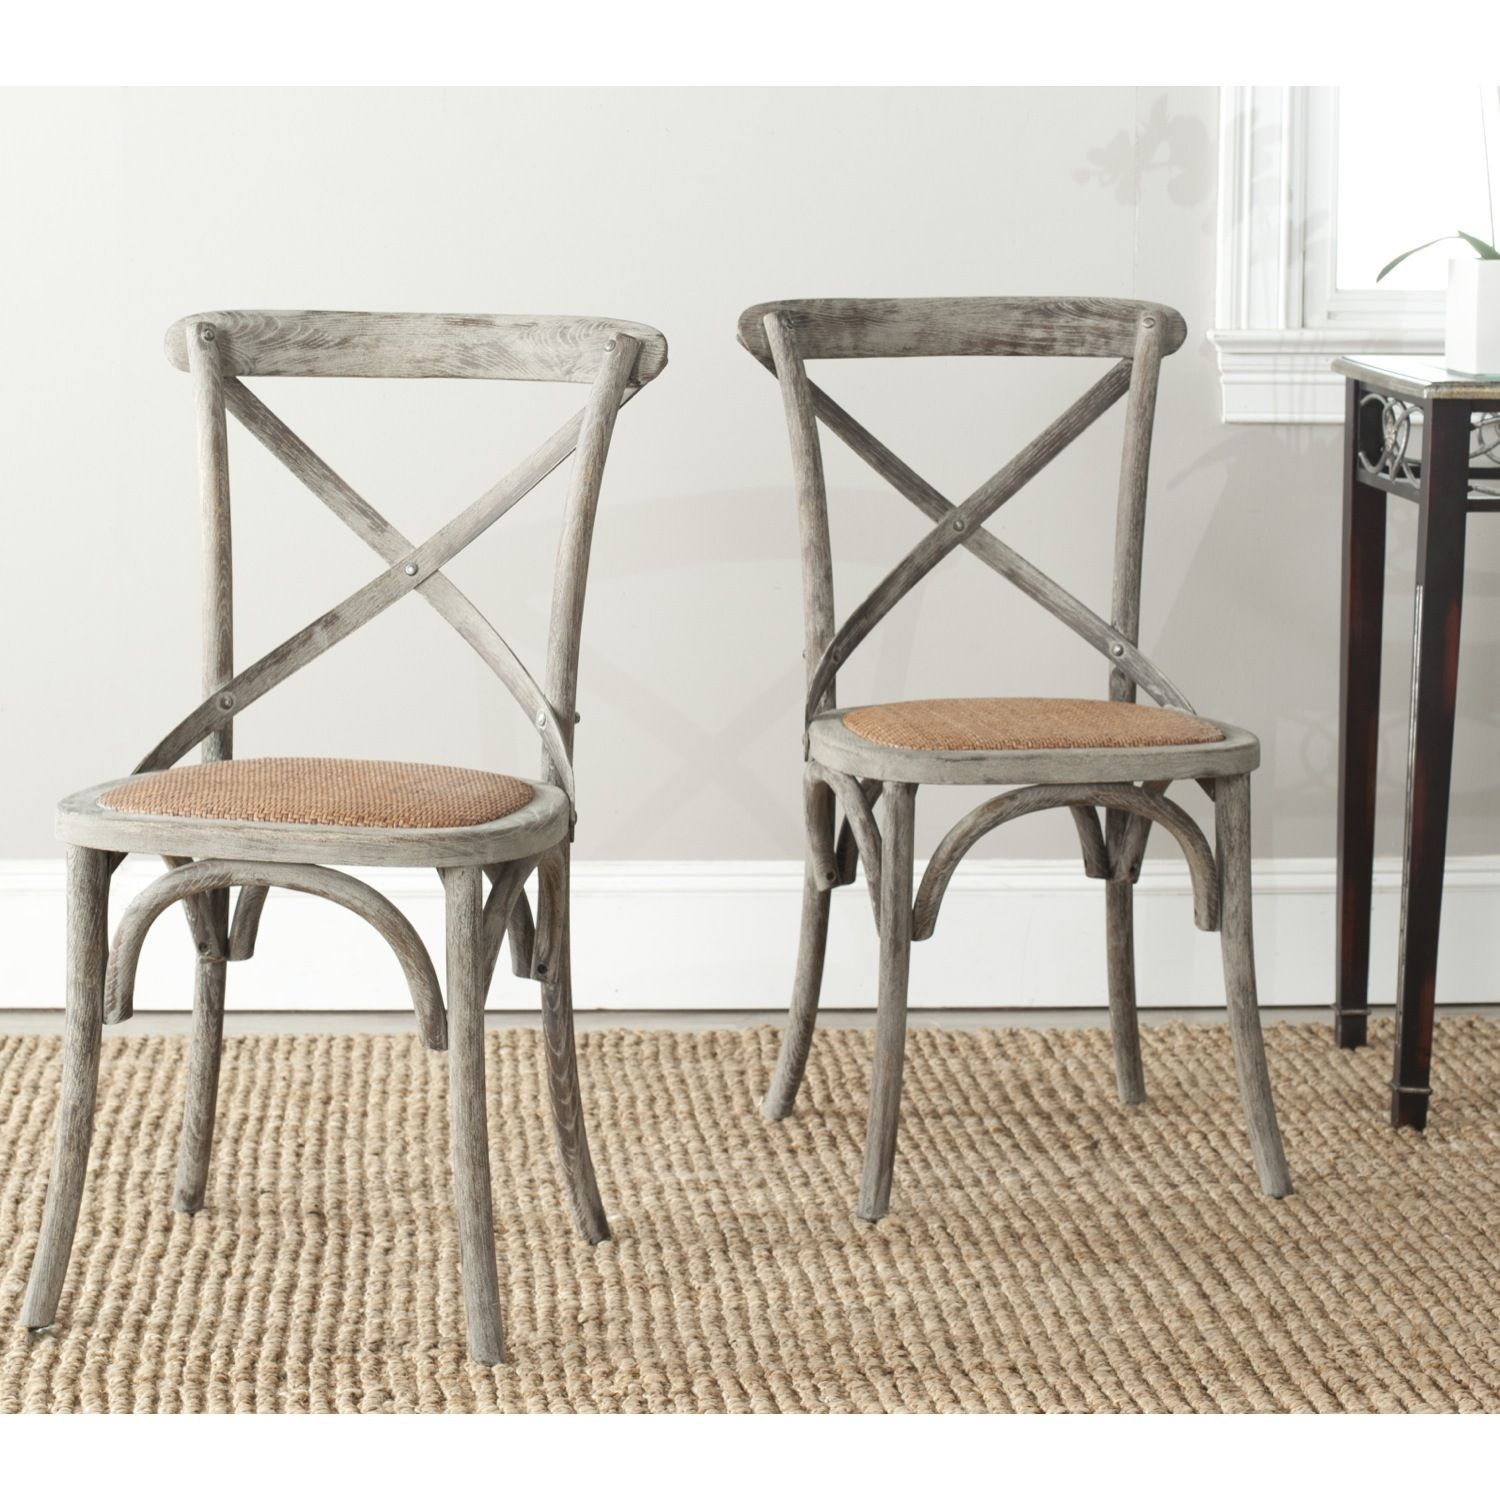 This set of two Safavieh Franklin X back chairs is crafted of